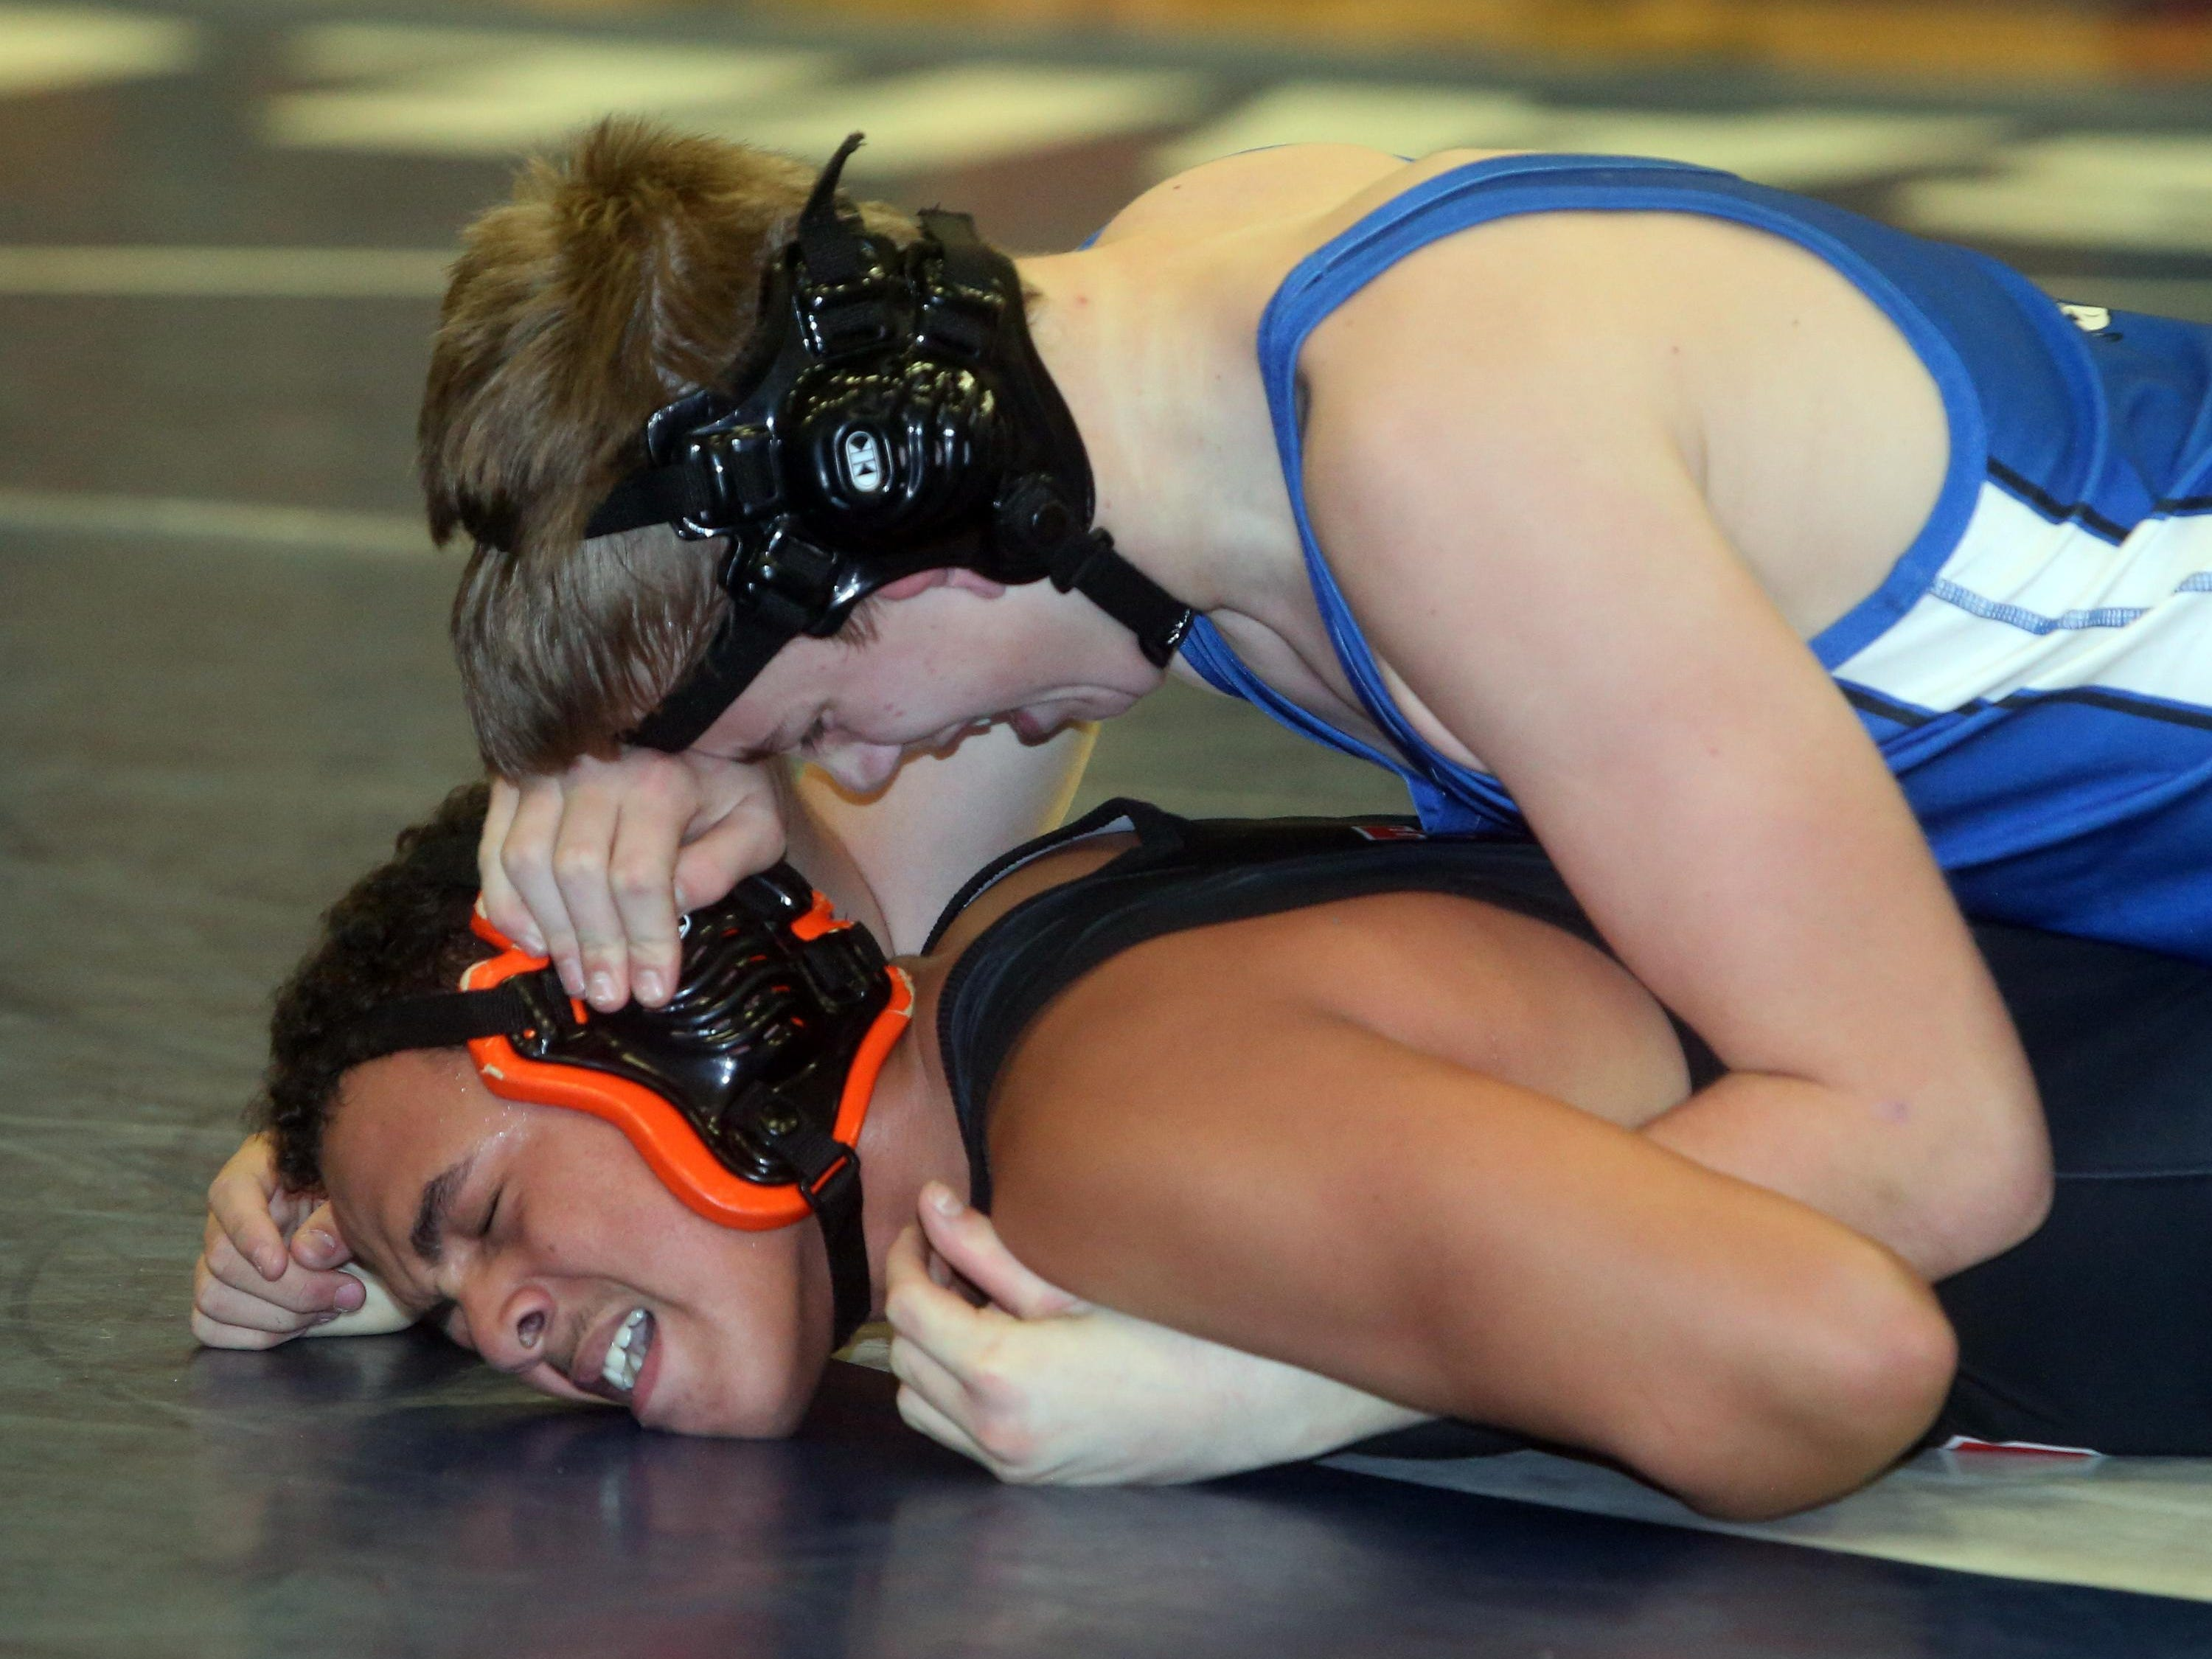 Pearl River's Dan Hogan pinned Croton's Izzy Rocker in a 170-pound match during a quad wrestling meet at Hendrick Hudson High School on Thursday. The Pirates advanced to the final of the D2 Section 1 Dual Meet Championships.